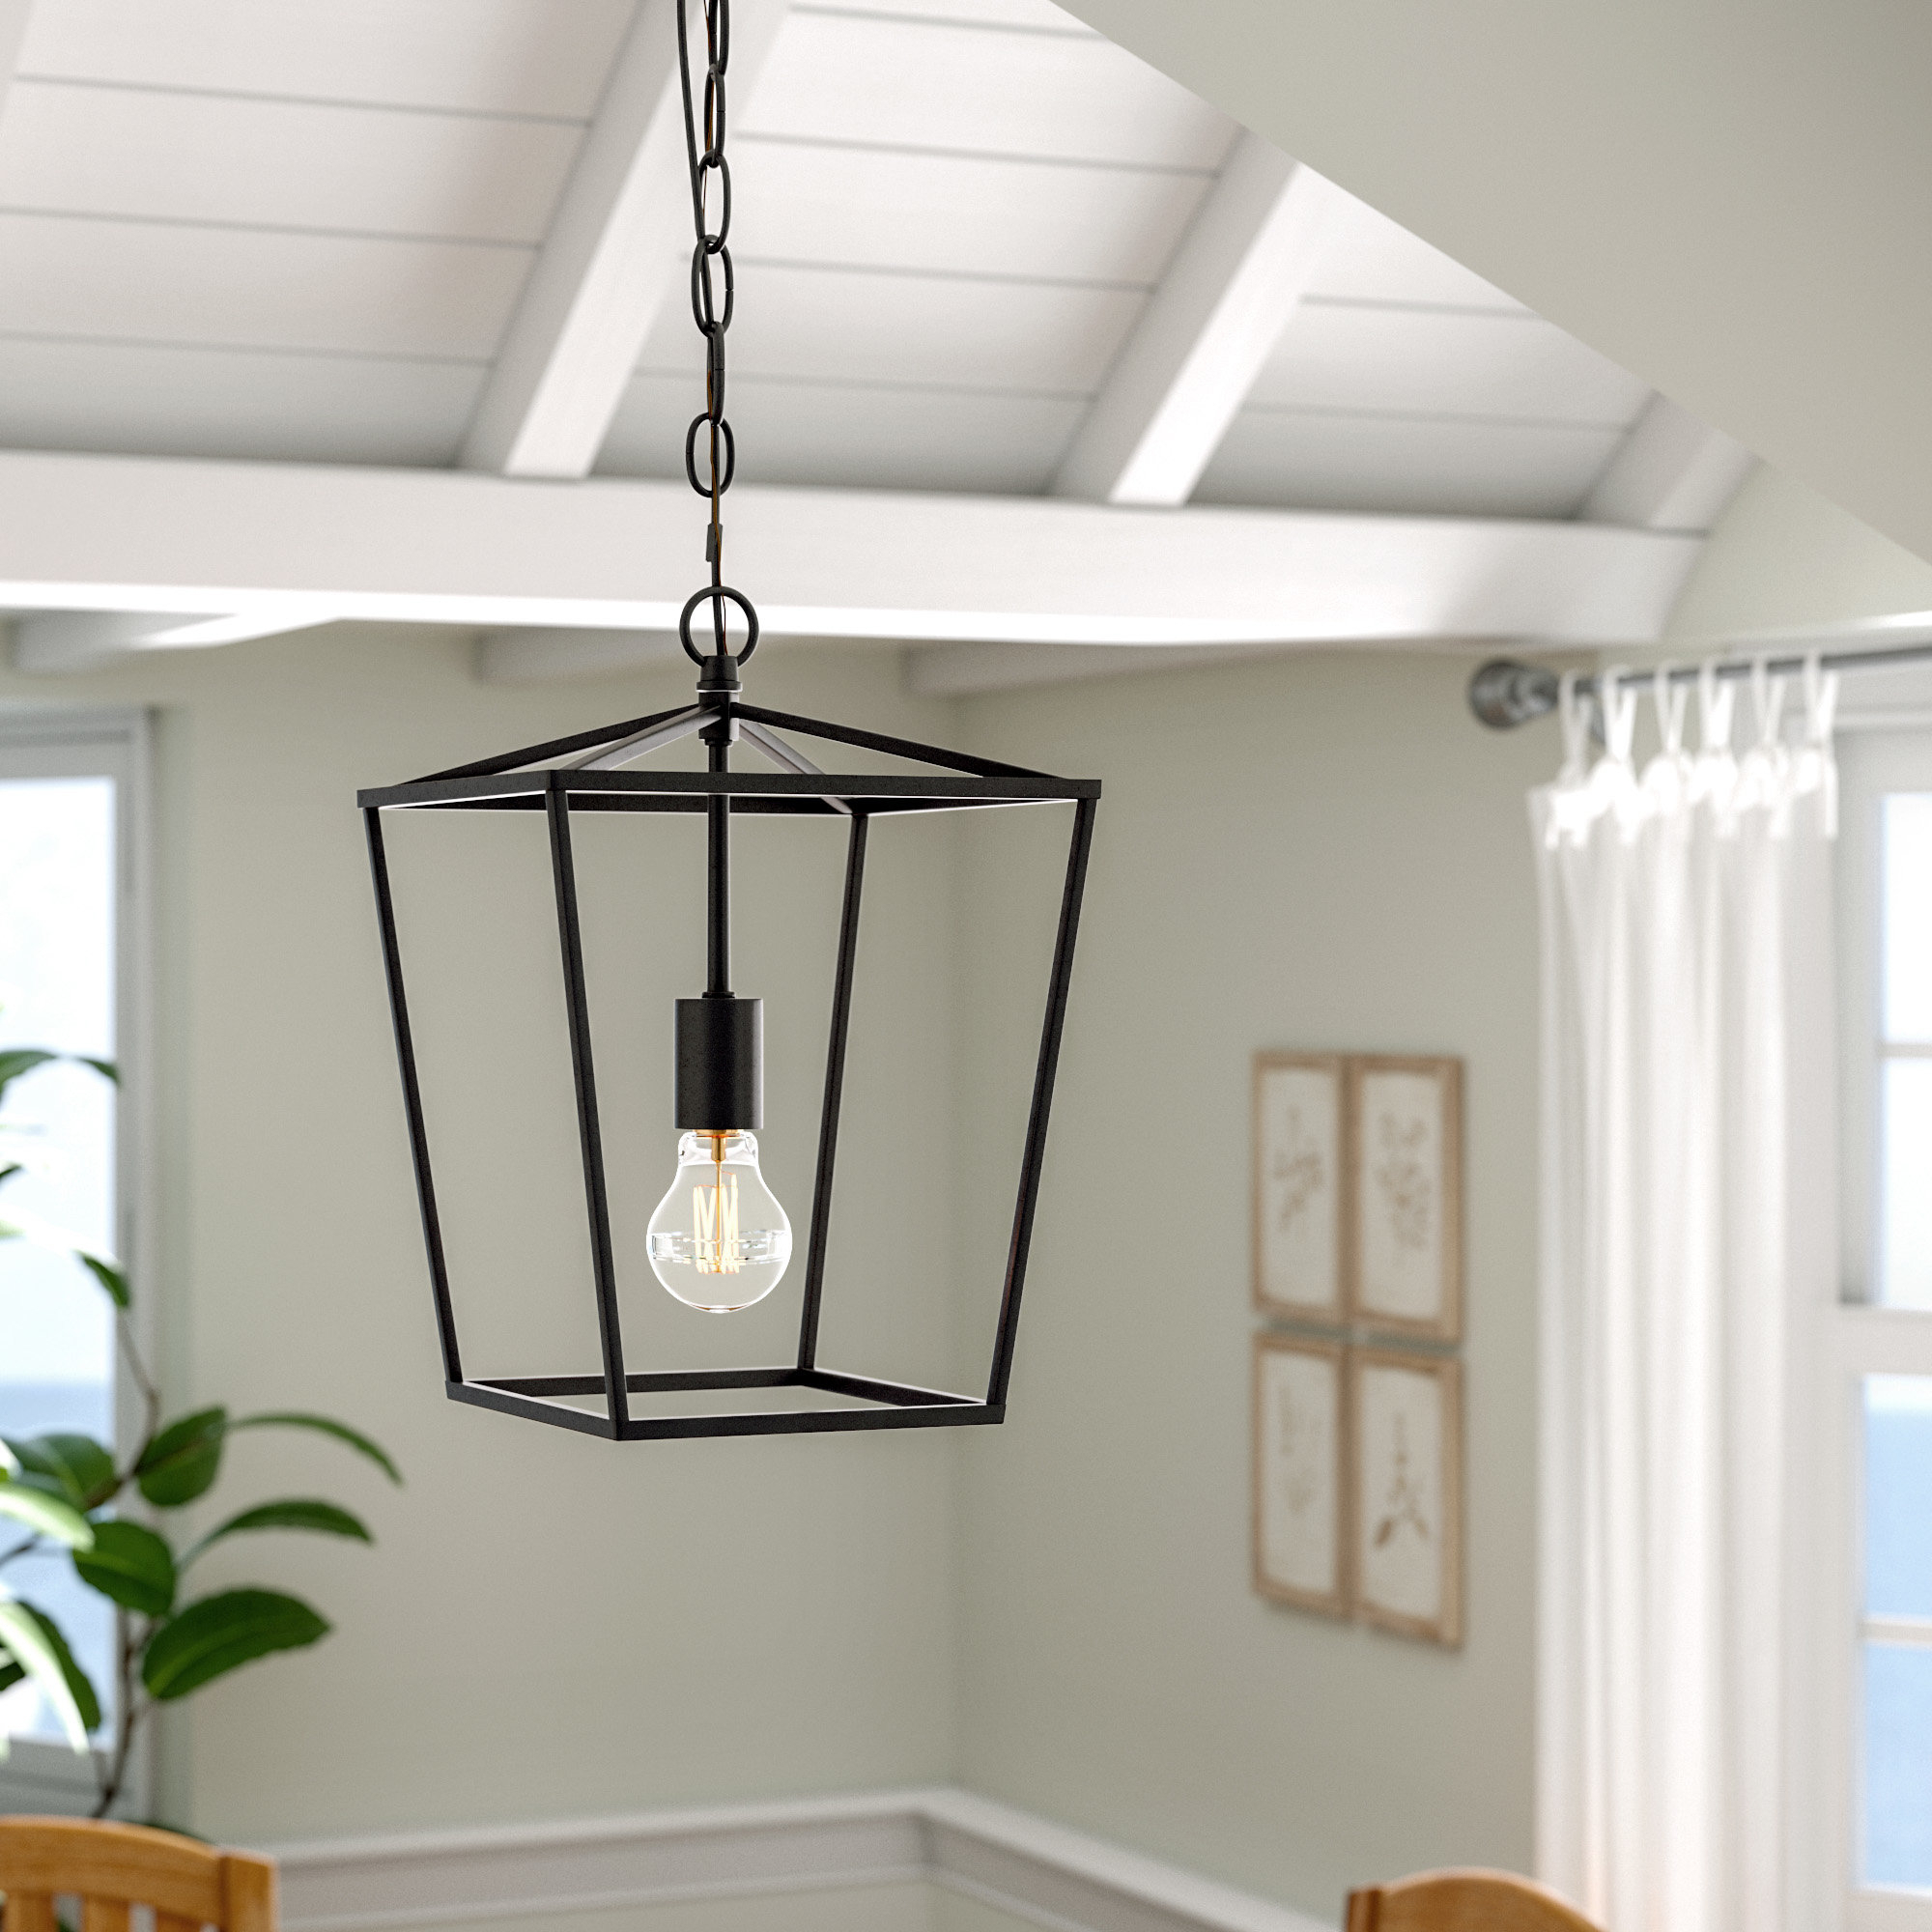 Most Recent Akash Industrial Vintage 1 Light Geometric Pendants Throughout Vintage Barn Lighting Pendant (Gallery 14 of 20)